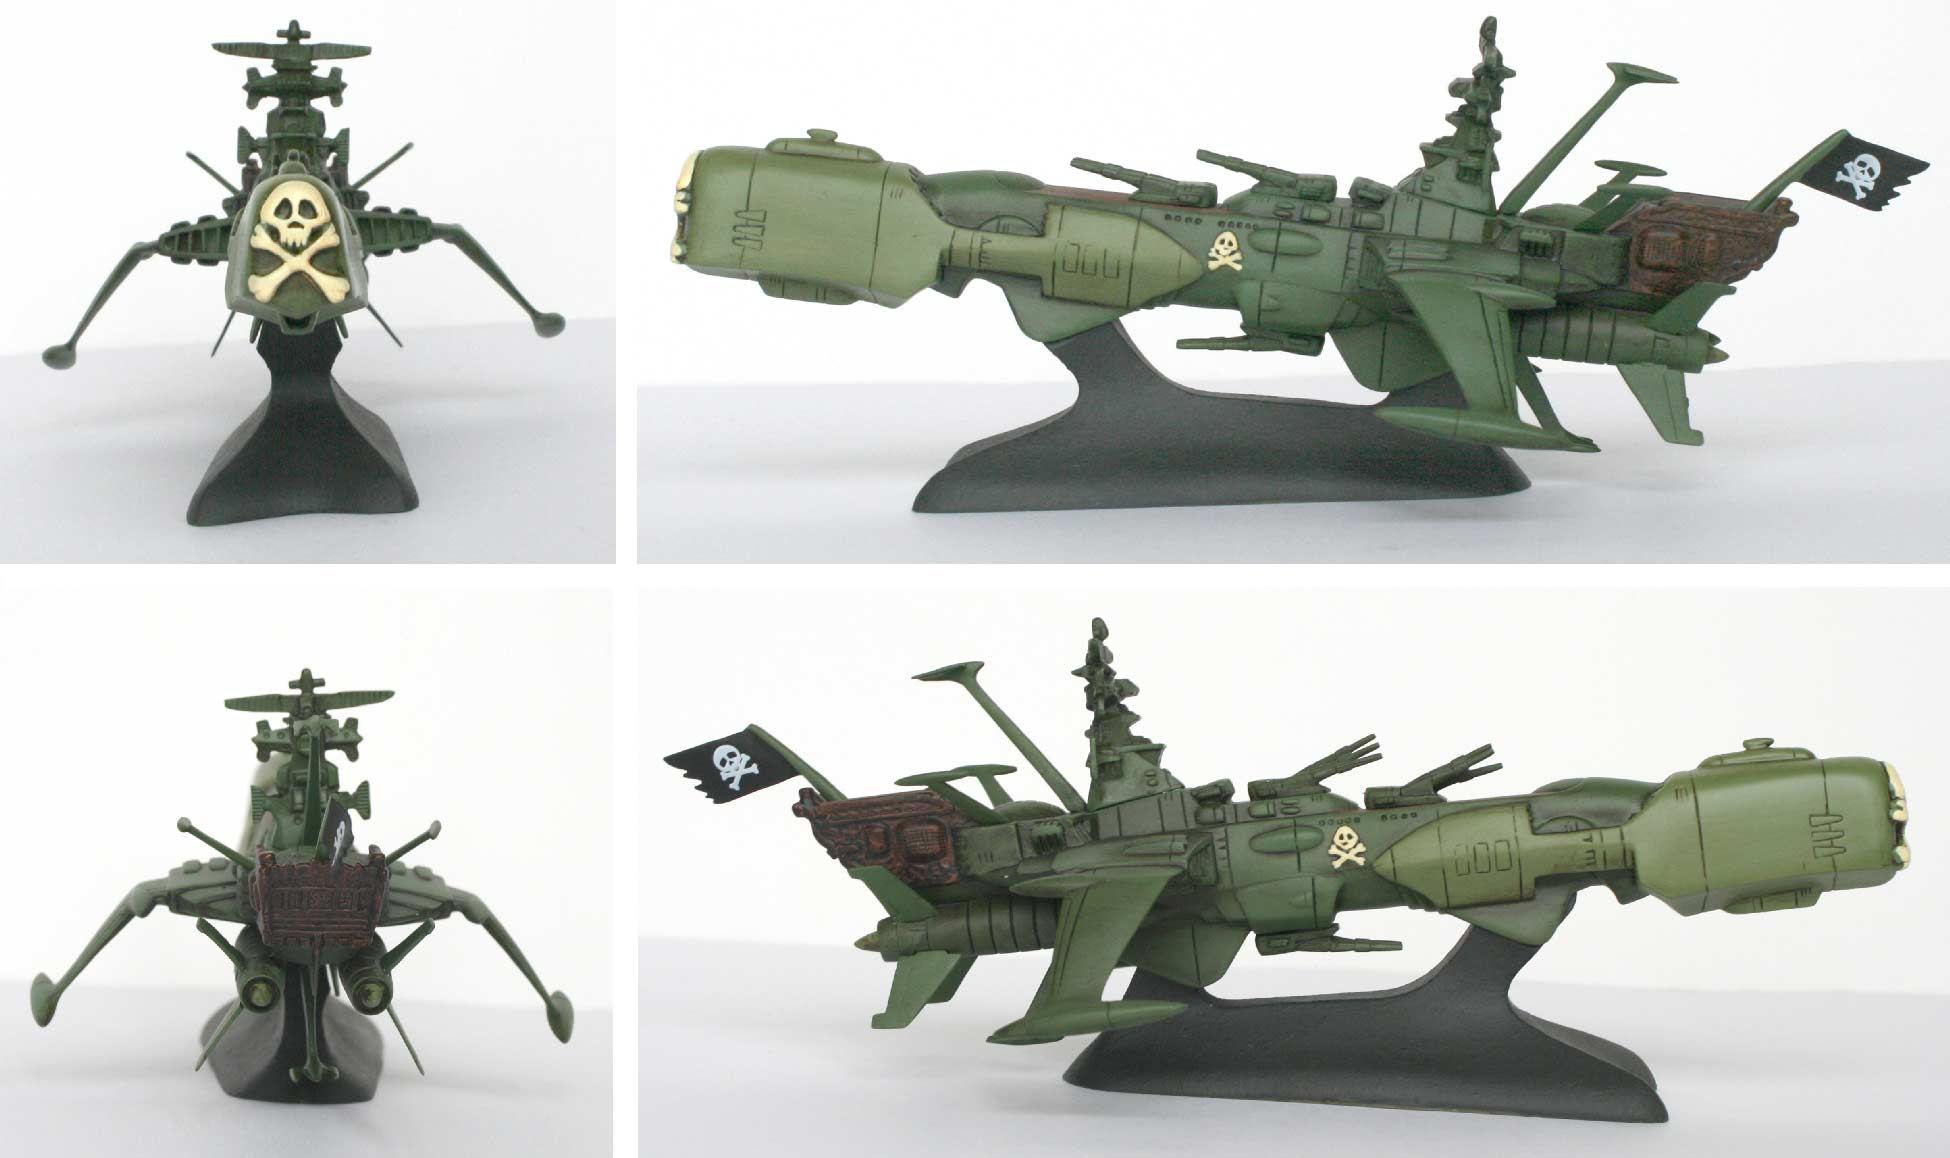 Mabell : Arcadia - Leiji's Space ship collection (jouet)